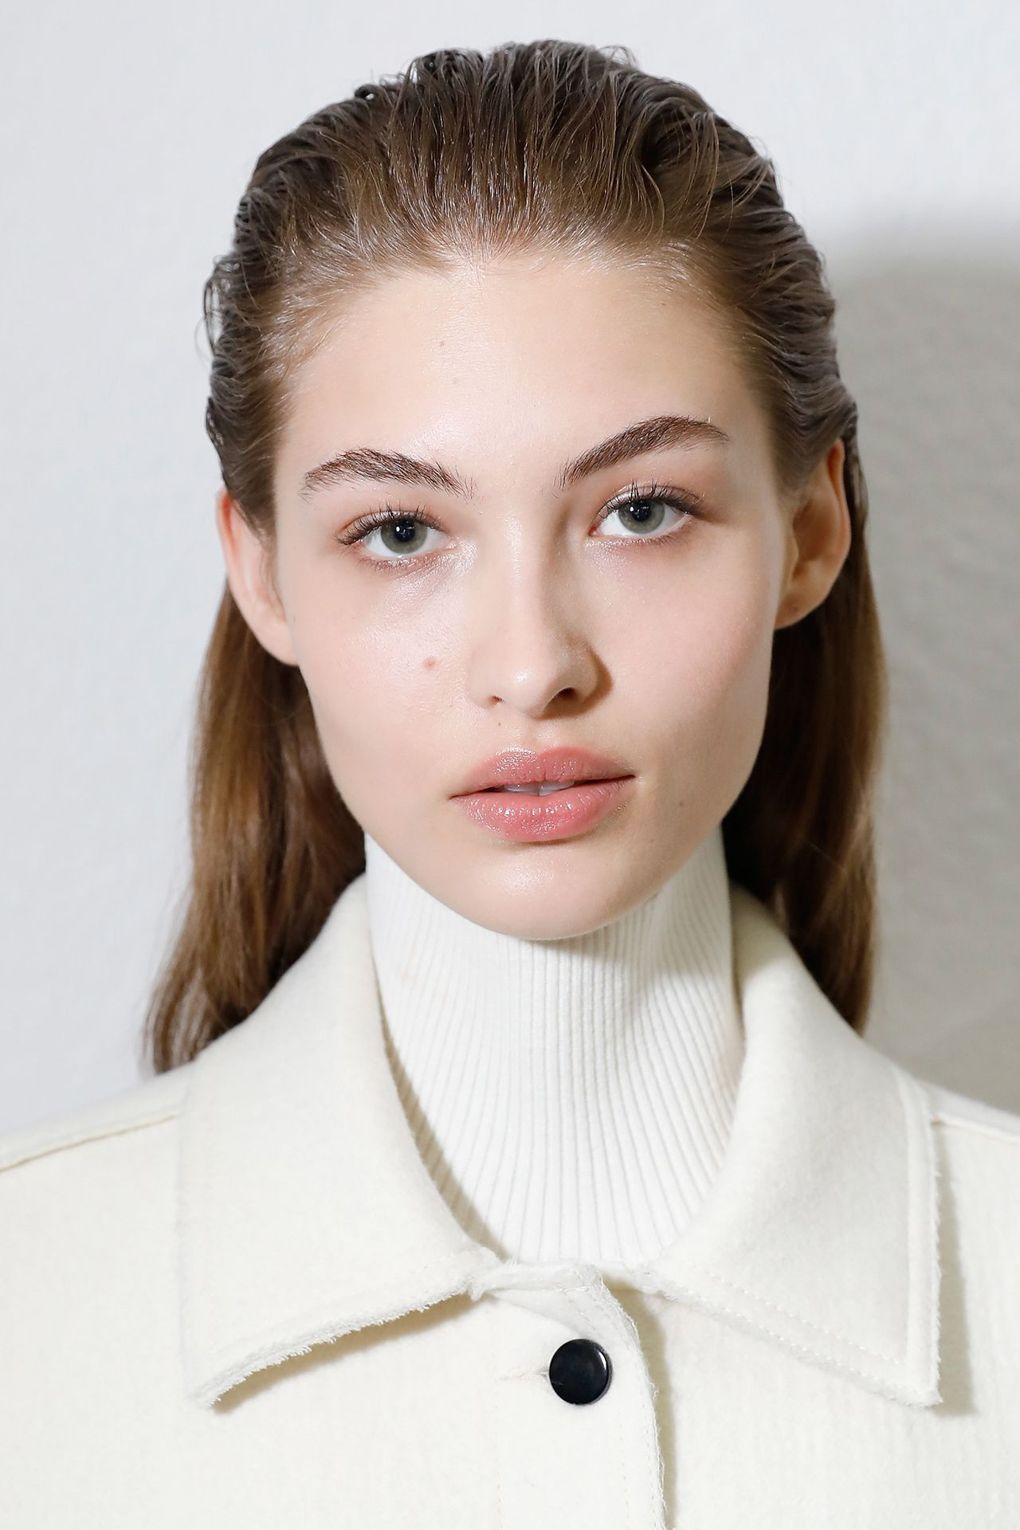 The City: Milan The Show: Sportmax The Look: Slicked-back hair